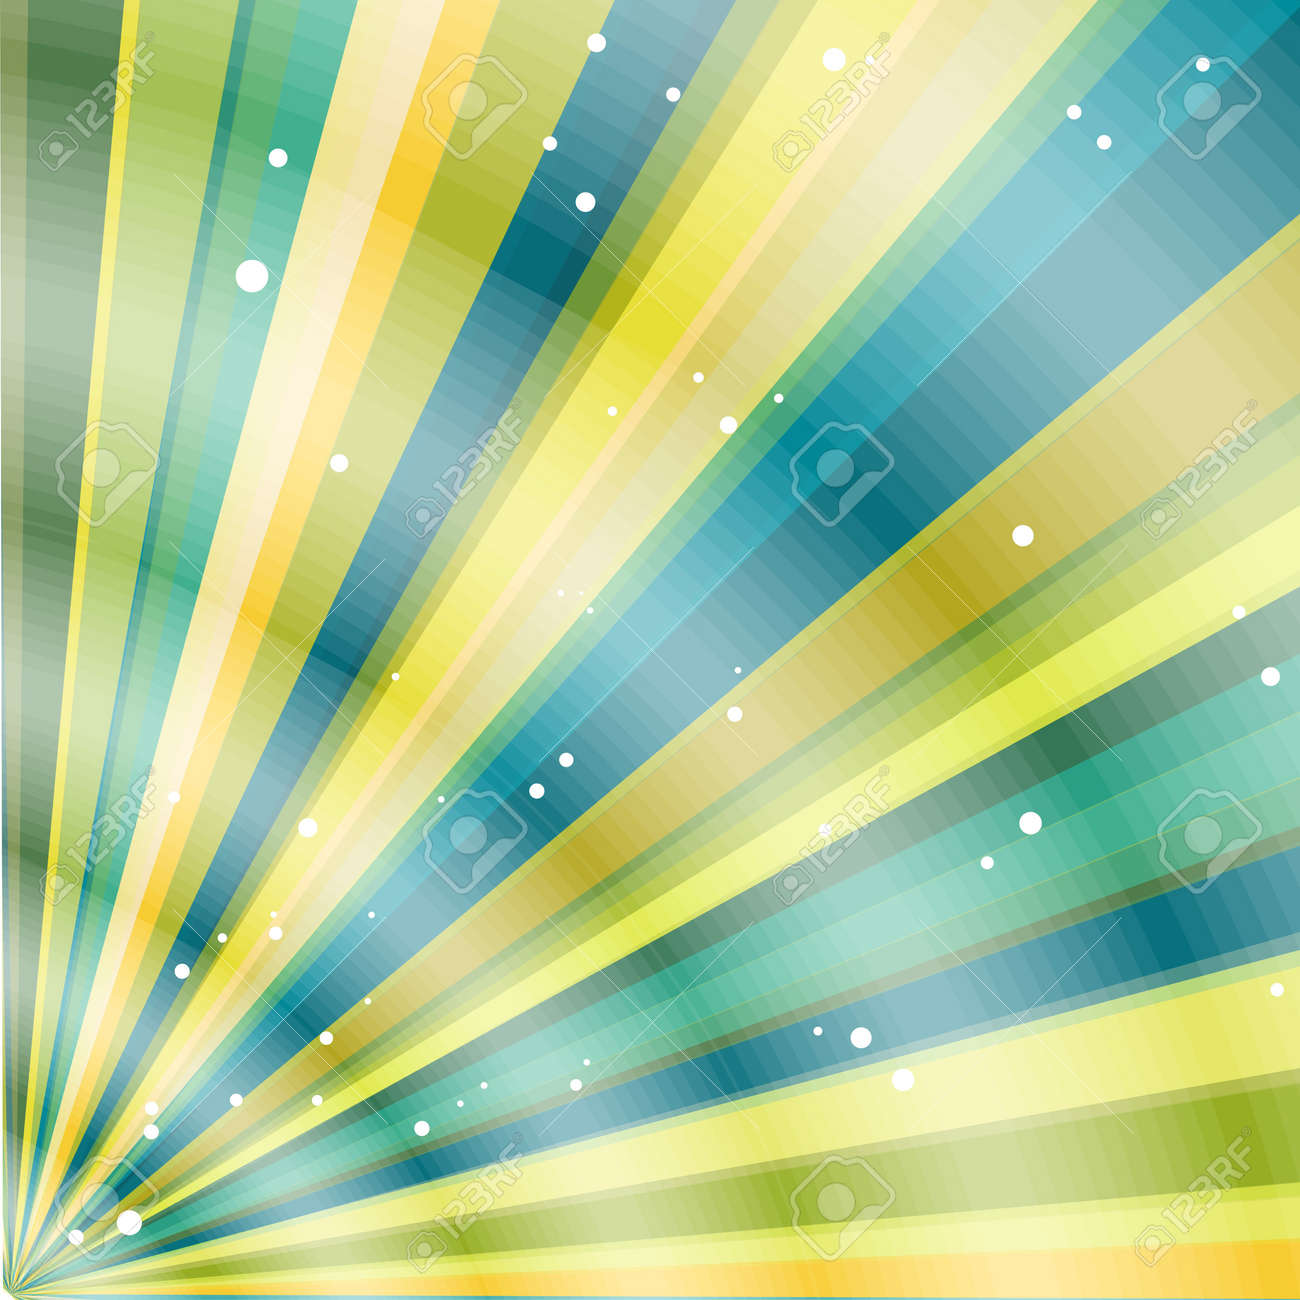 Multicolor beams grunge background. A vintage poster. Stock Vector - 14653302